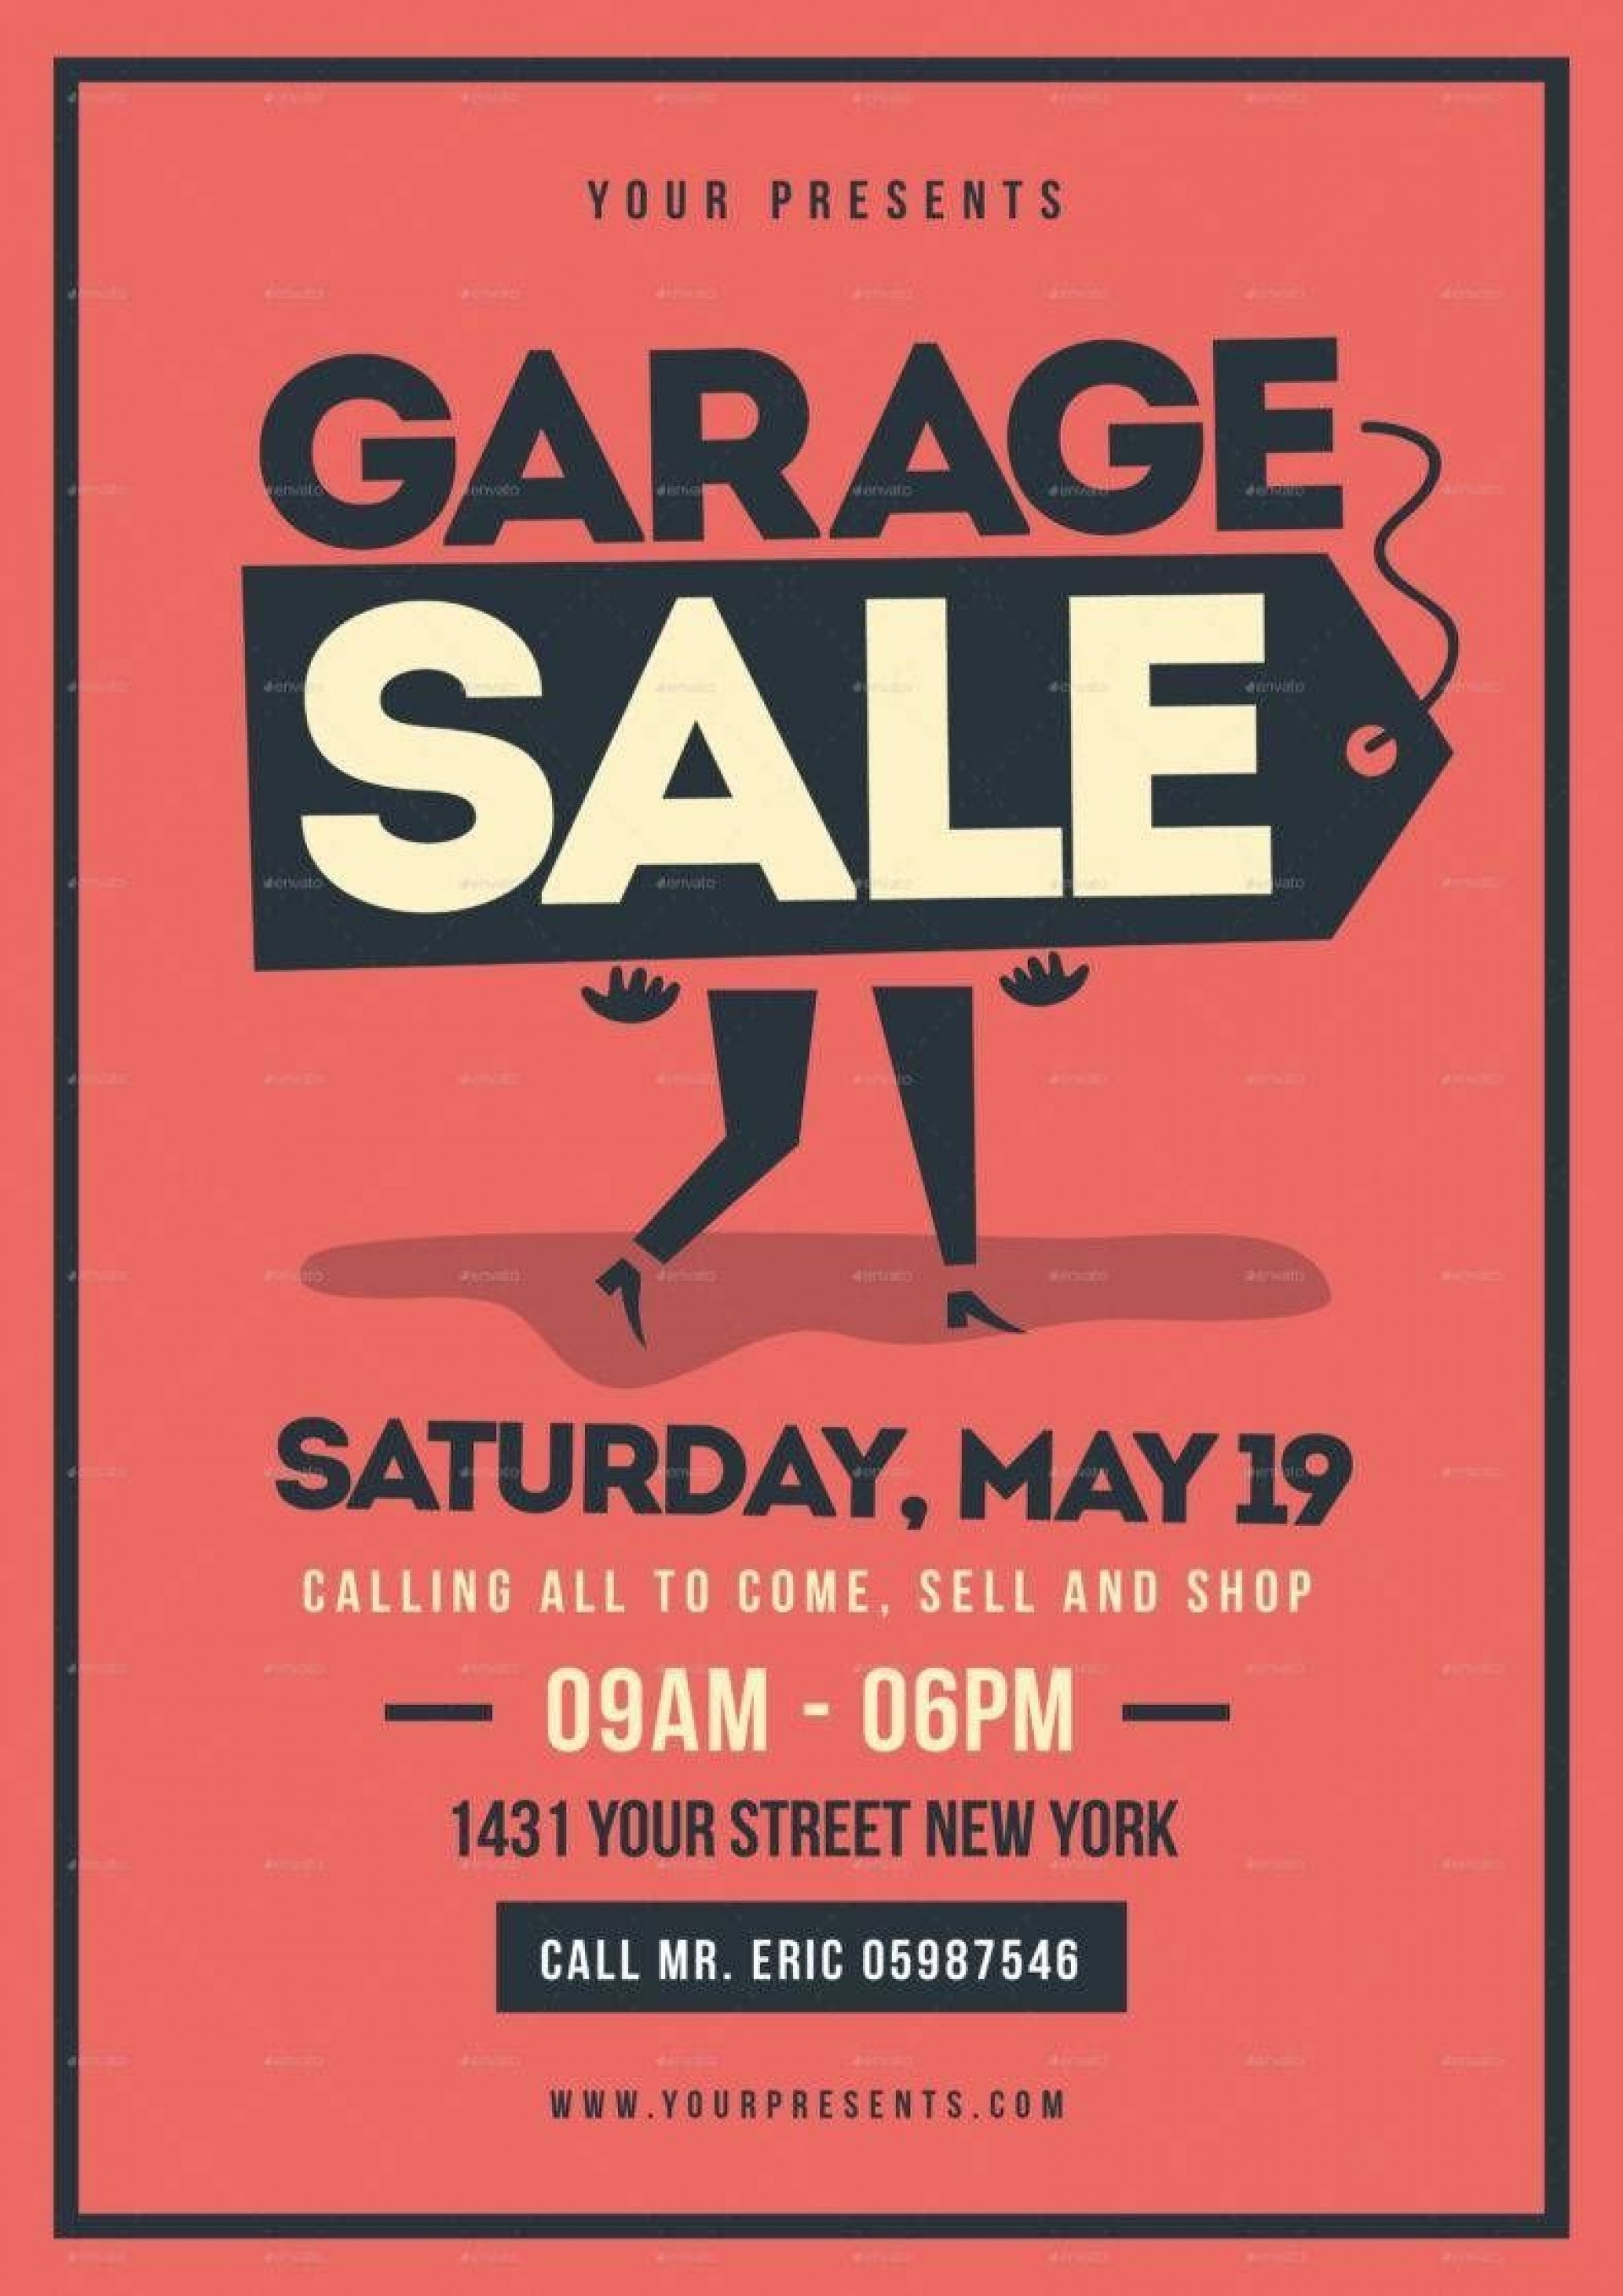 007 Remarkable Yard Sale Flyer Template Free Highest Quality  Community Garage1920